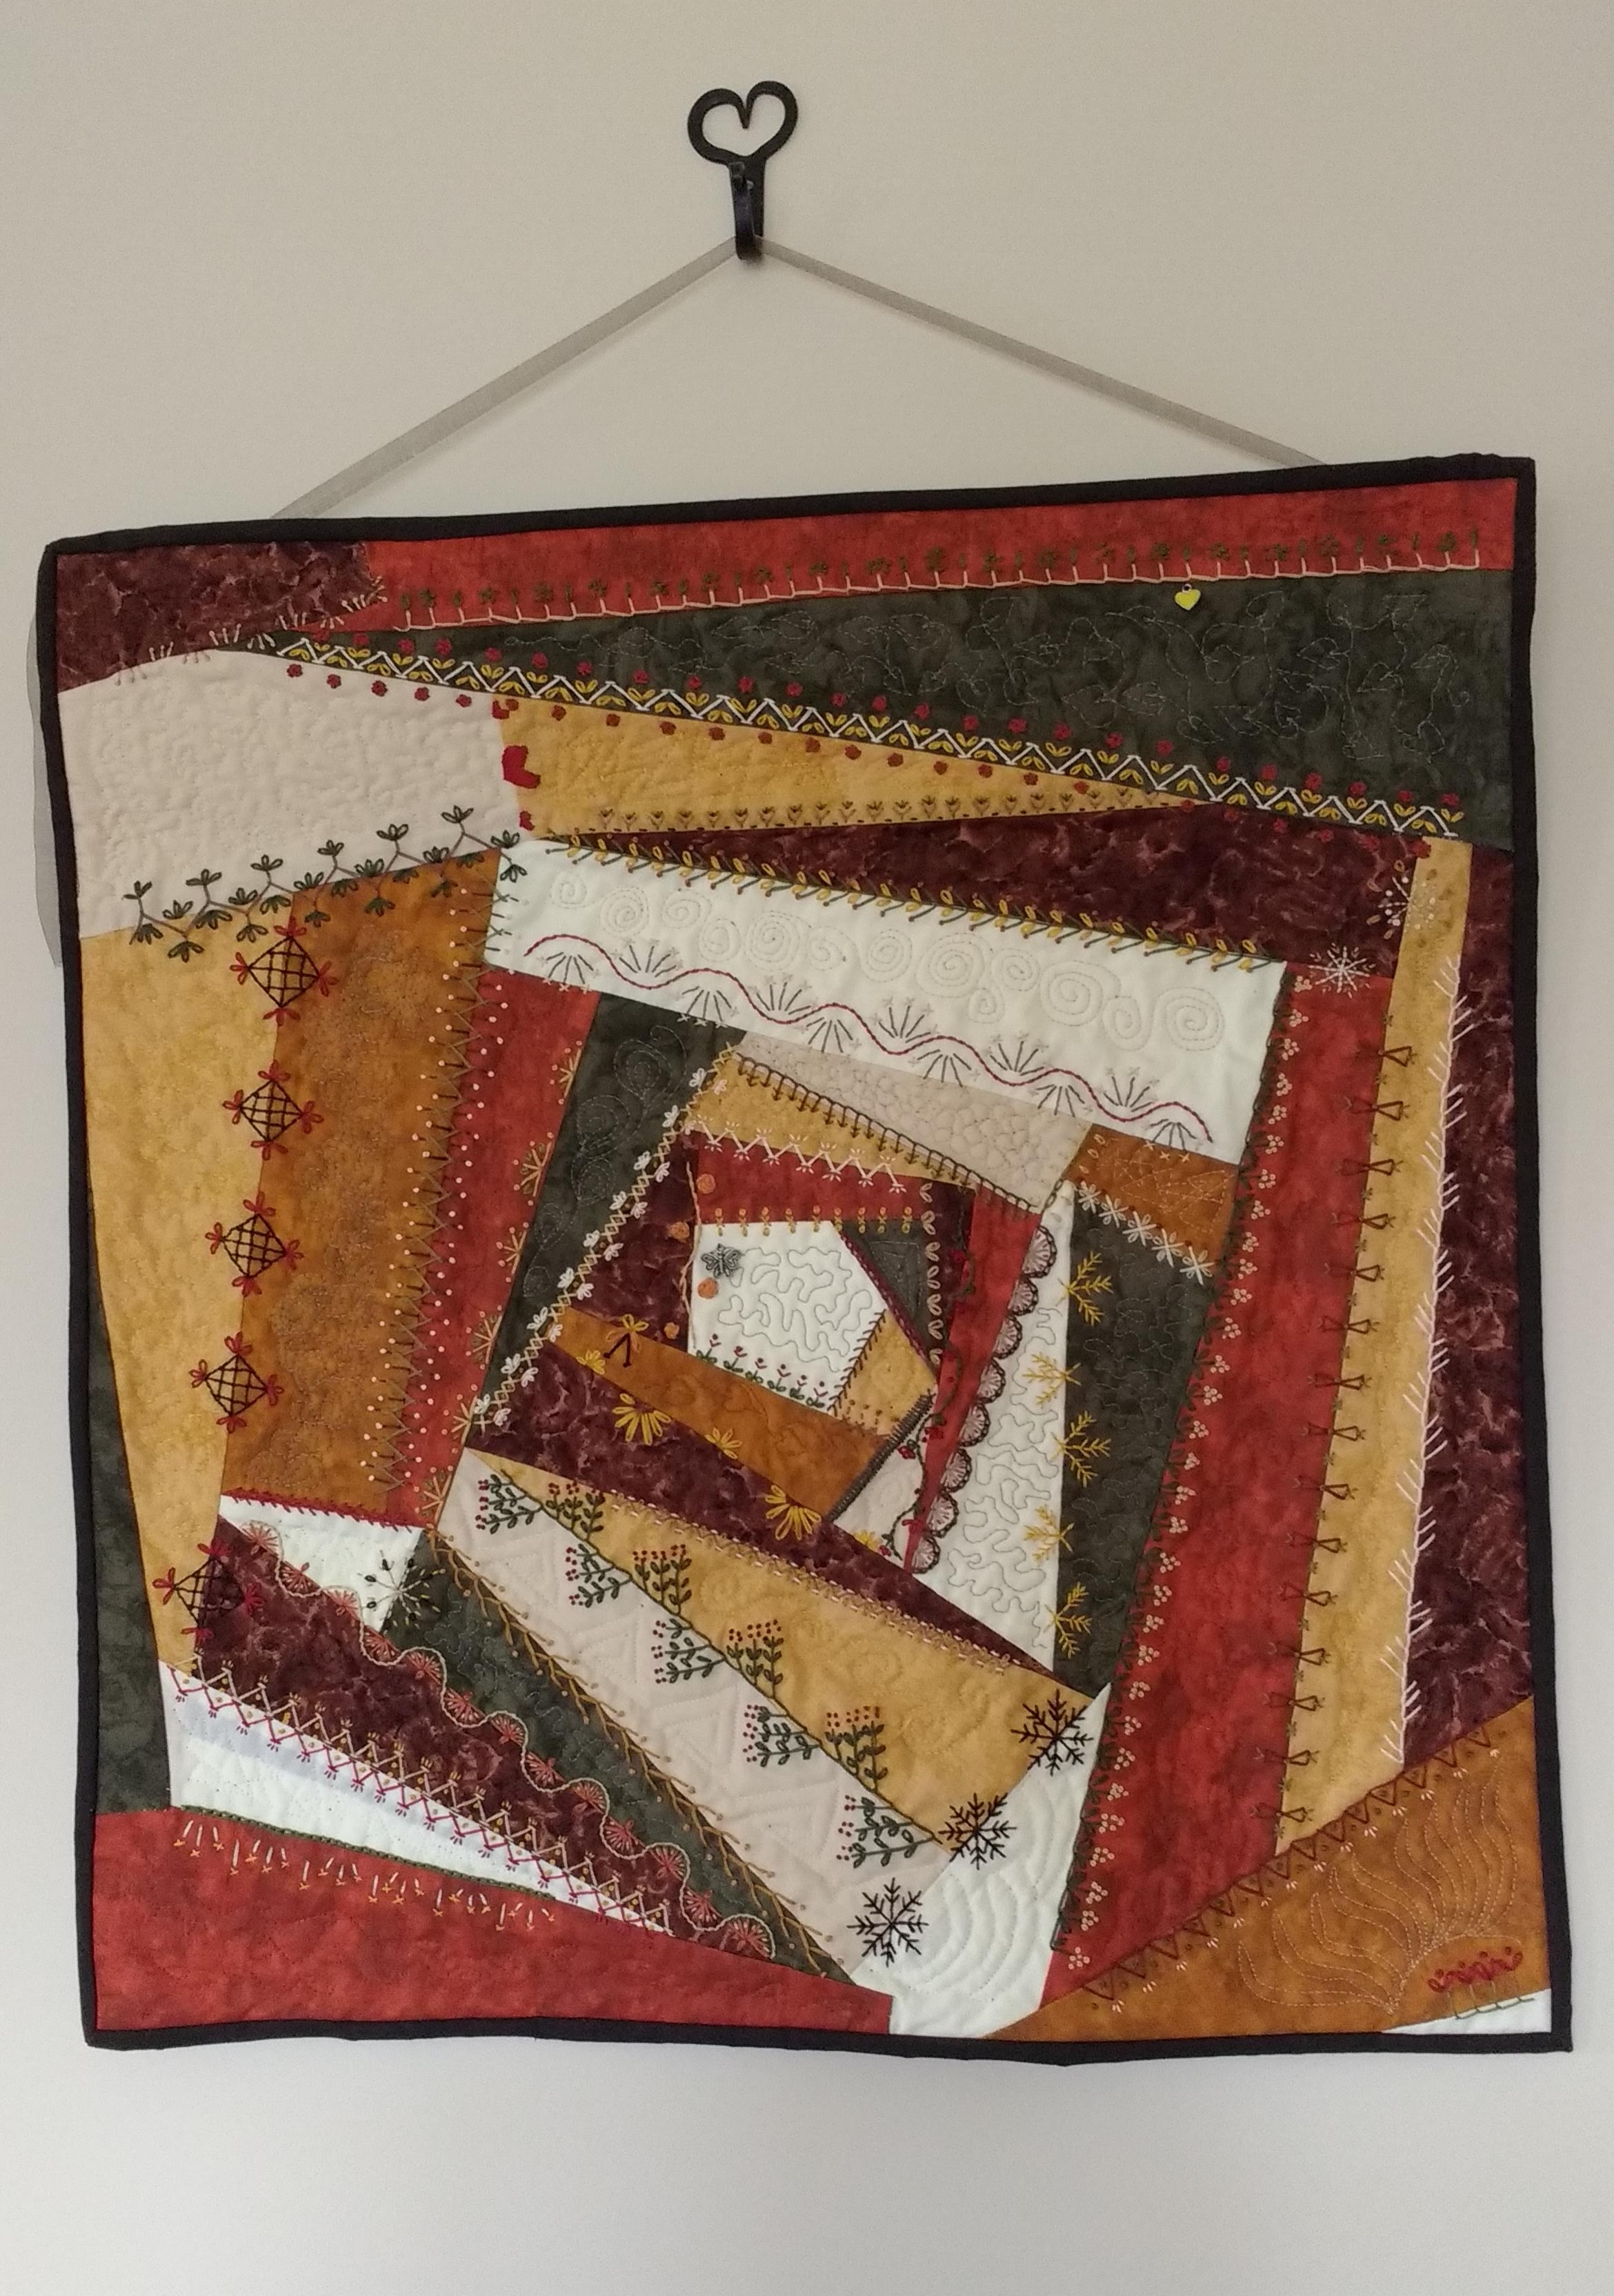 Another original design where I added lots of hand embroidery, as well as machine quilting. I'm loving the fall, earthy colors! And this piece won a 3rd Place Ribbon in the 2018 Vermont Quilt Festival!